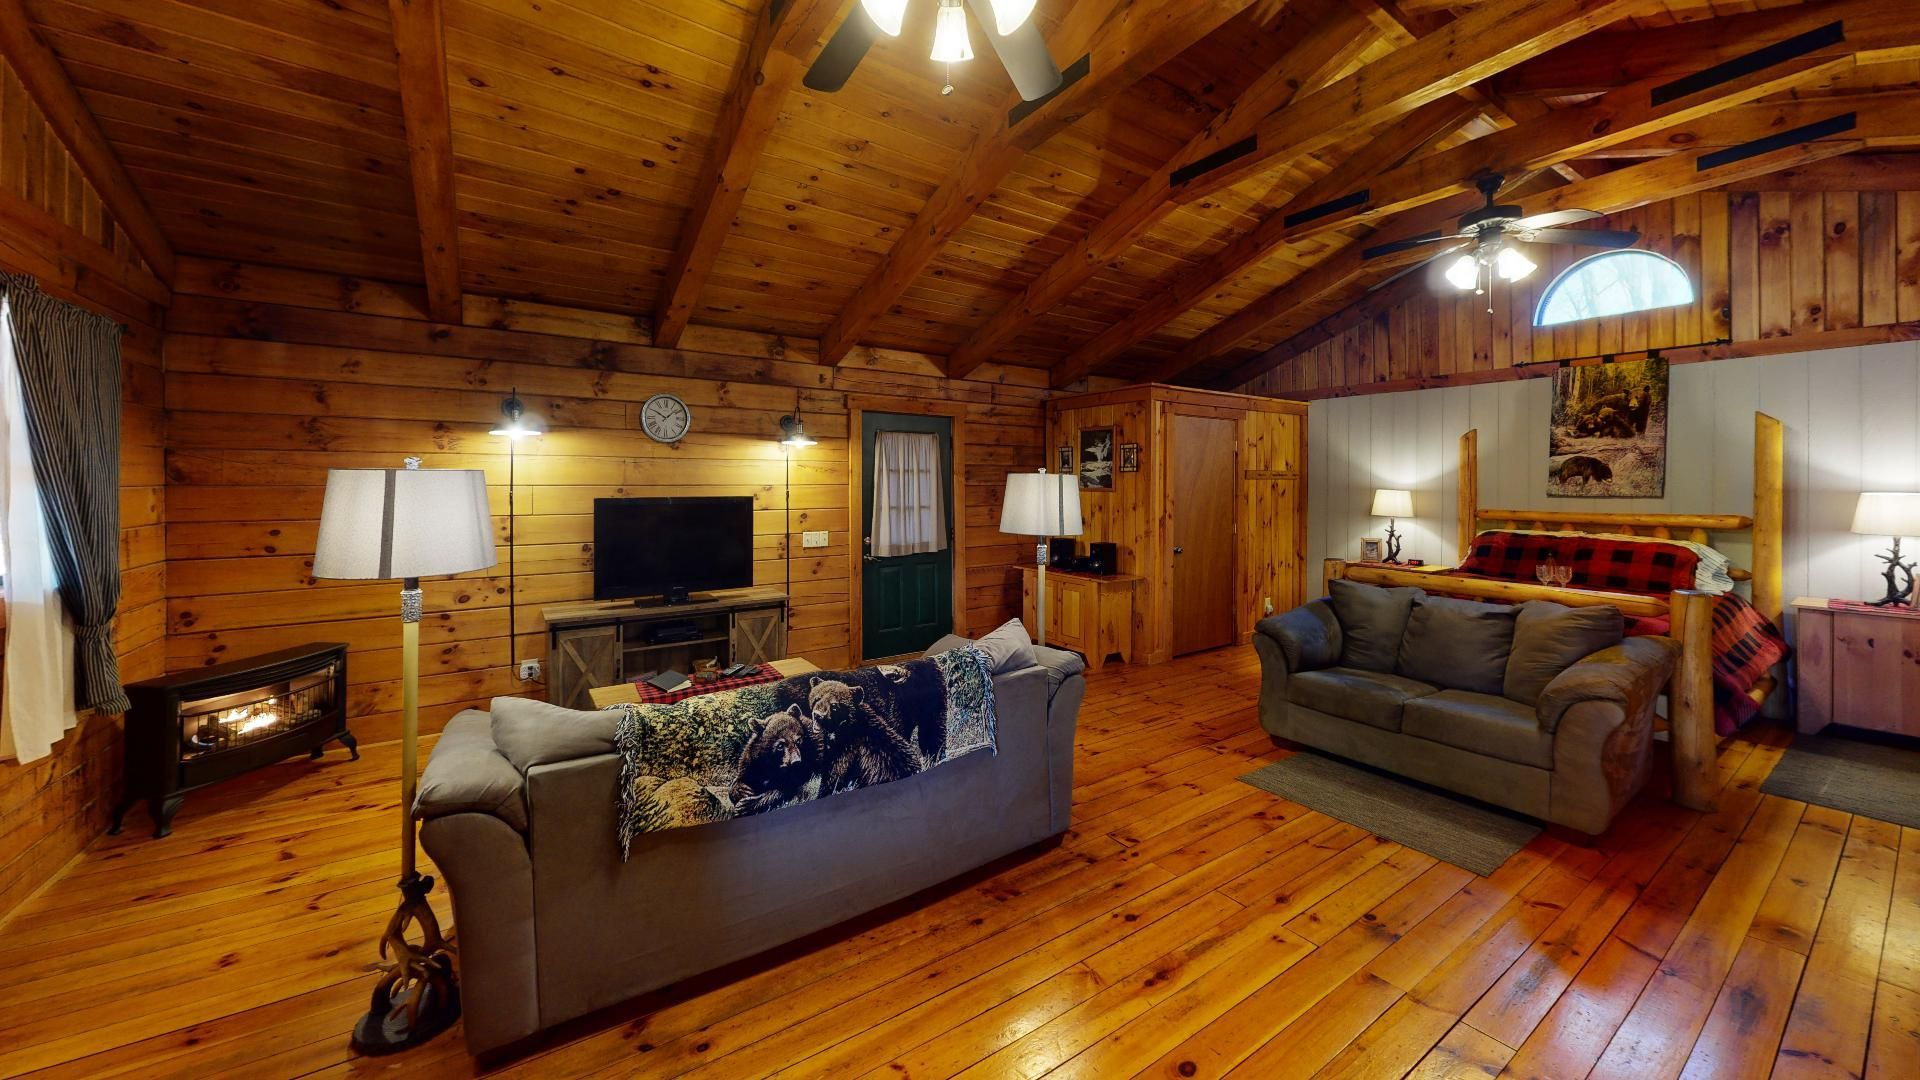 Heart of the Country Cabin & Lodge